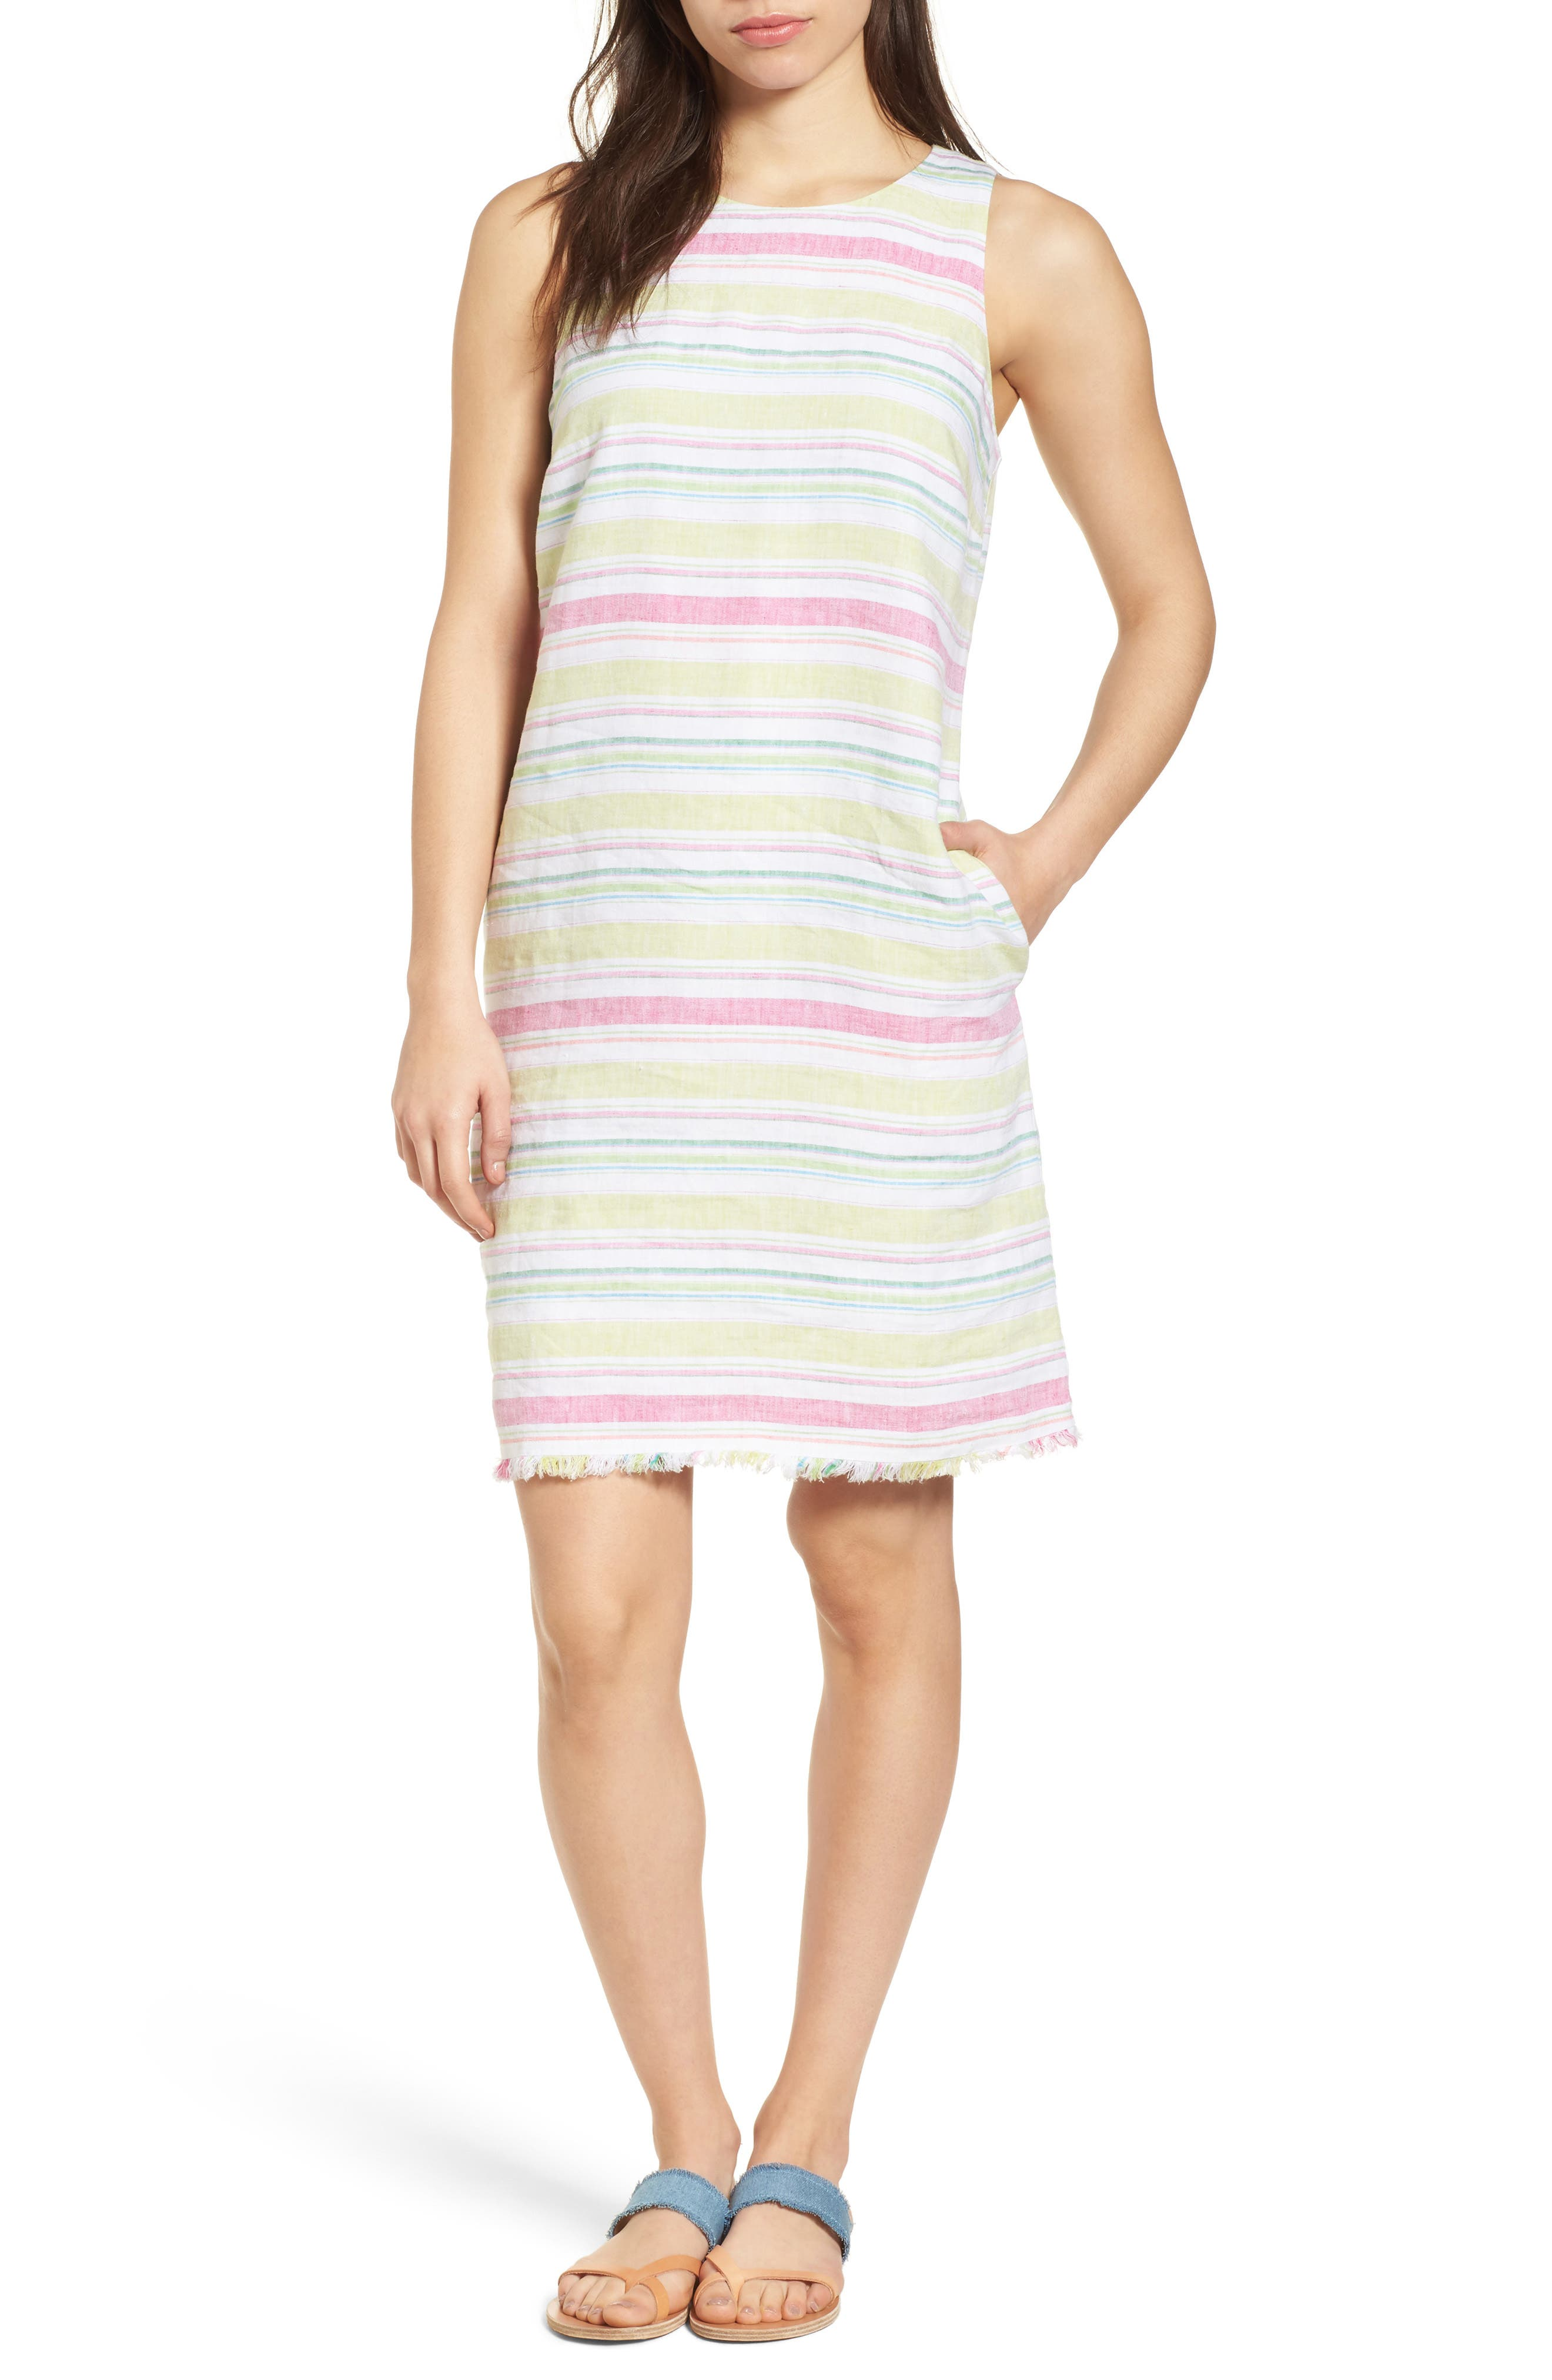 Tulum Stripe Shift Dress,                             Main thumbnail 1, color,                             Energy Yellow